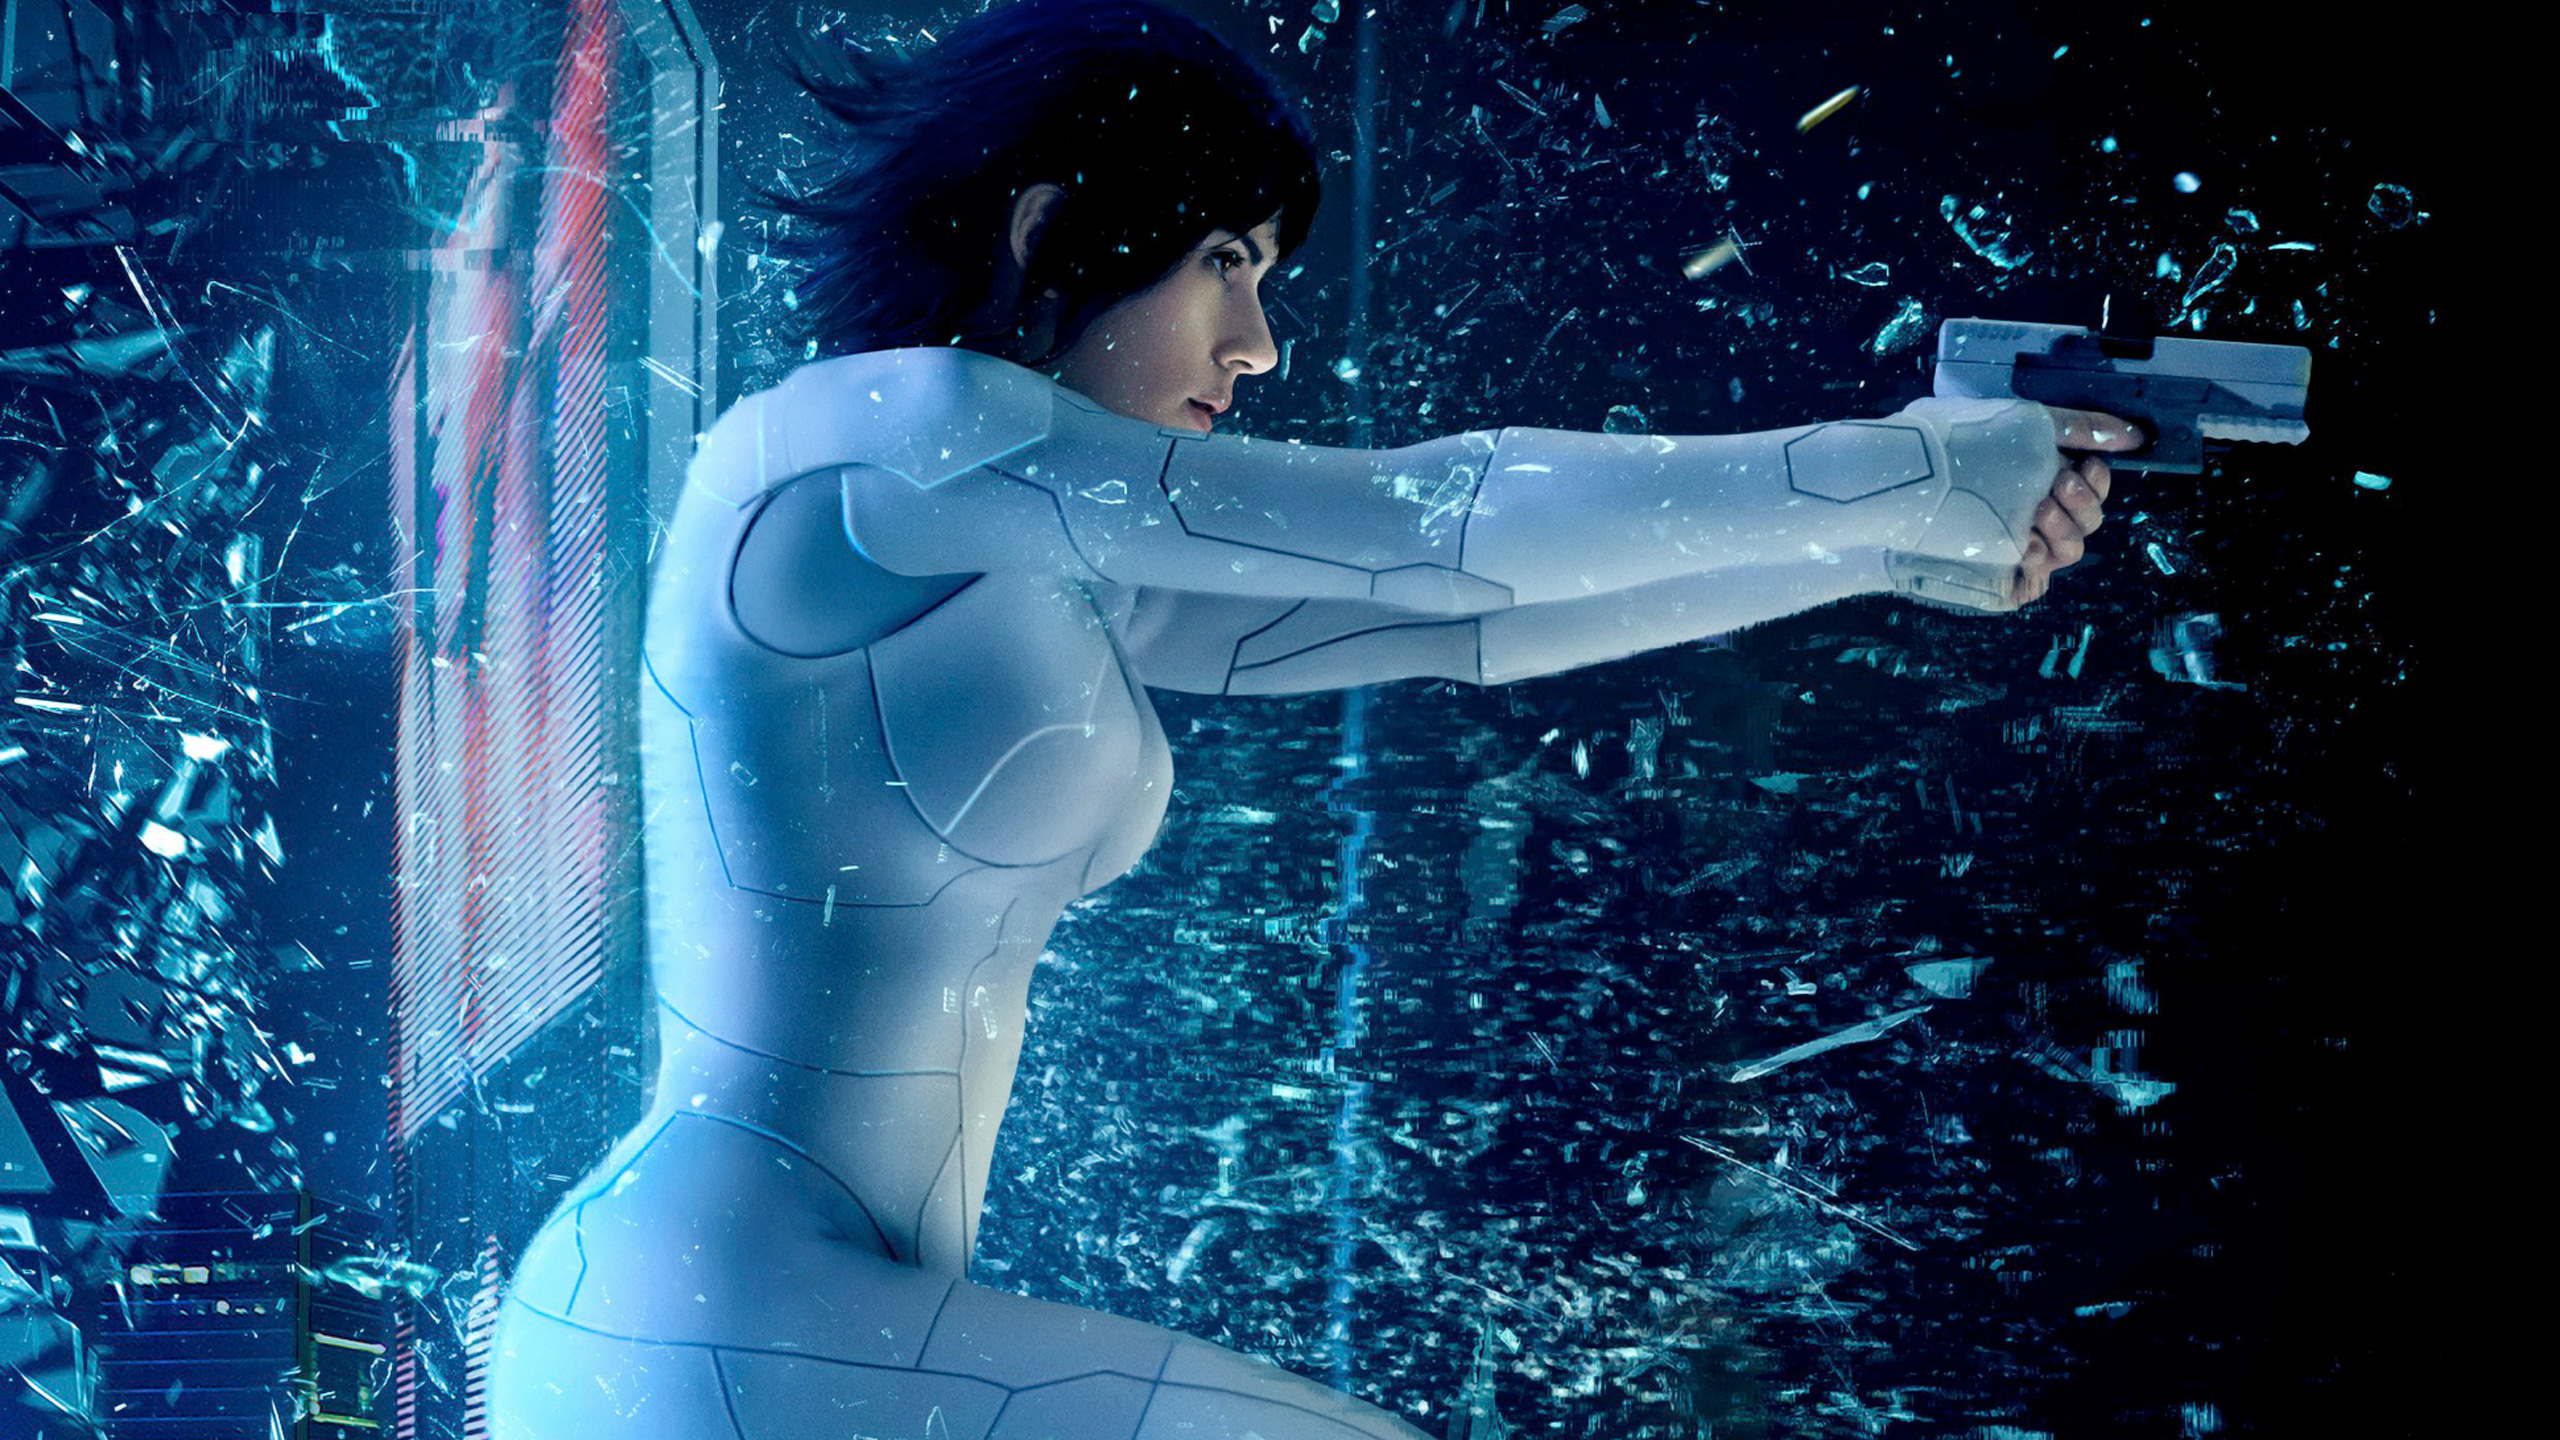 2560x1440 Ghost In The Shell 2017 Movie 1440p Resolution Hd